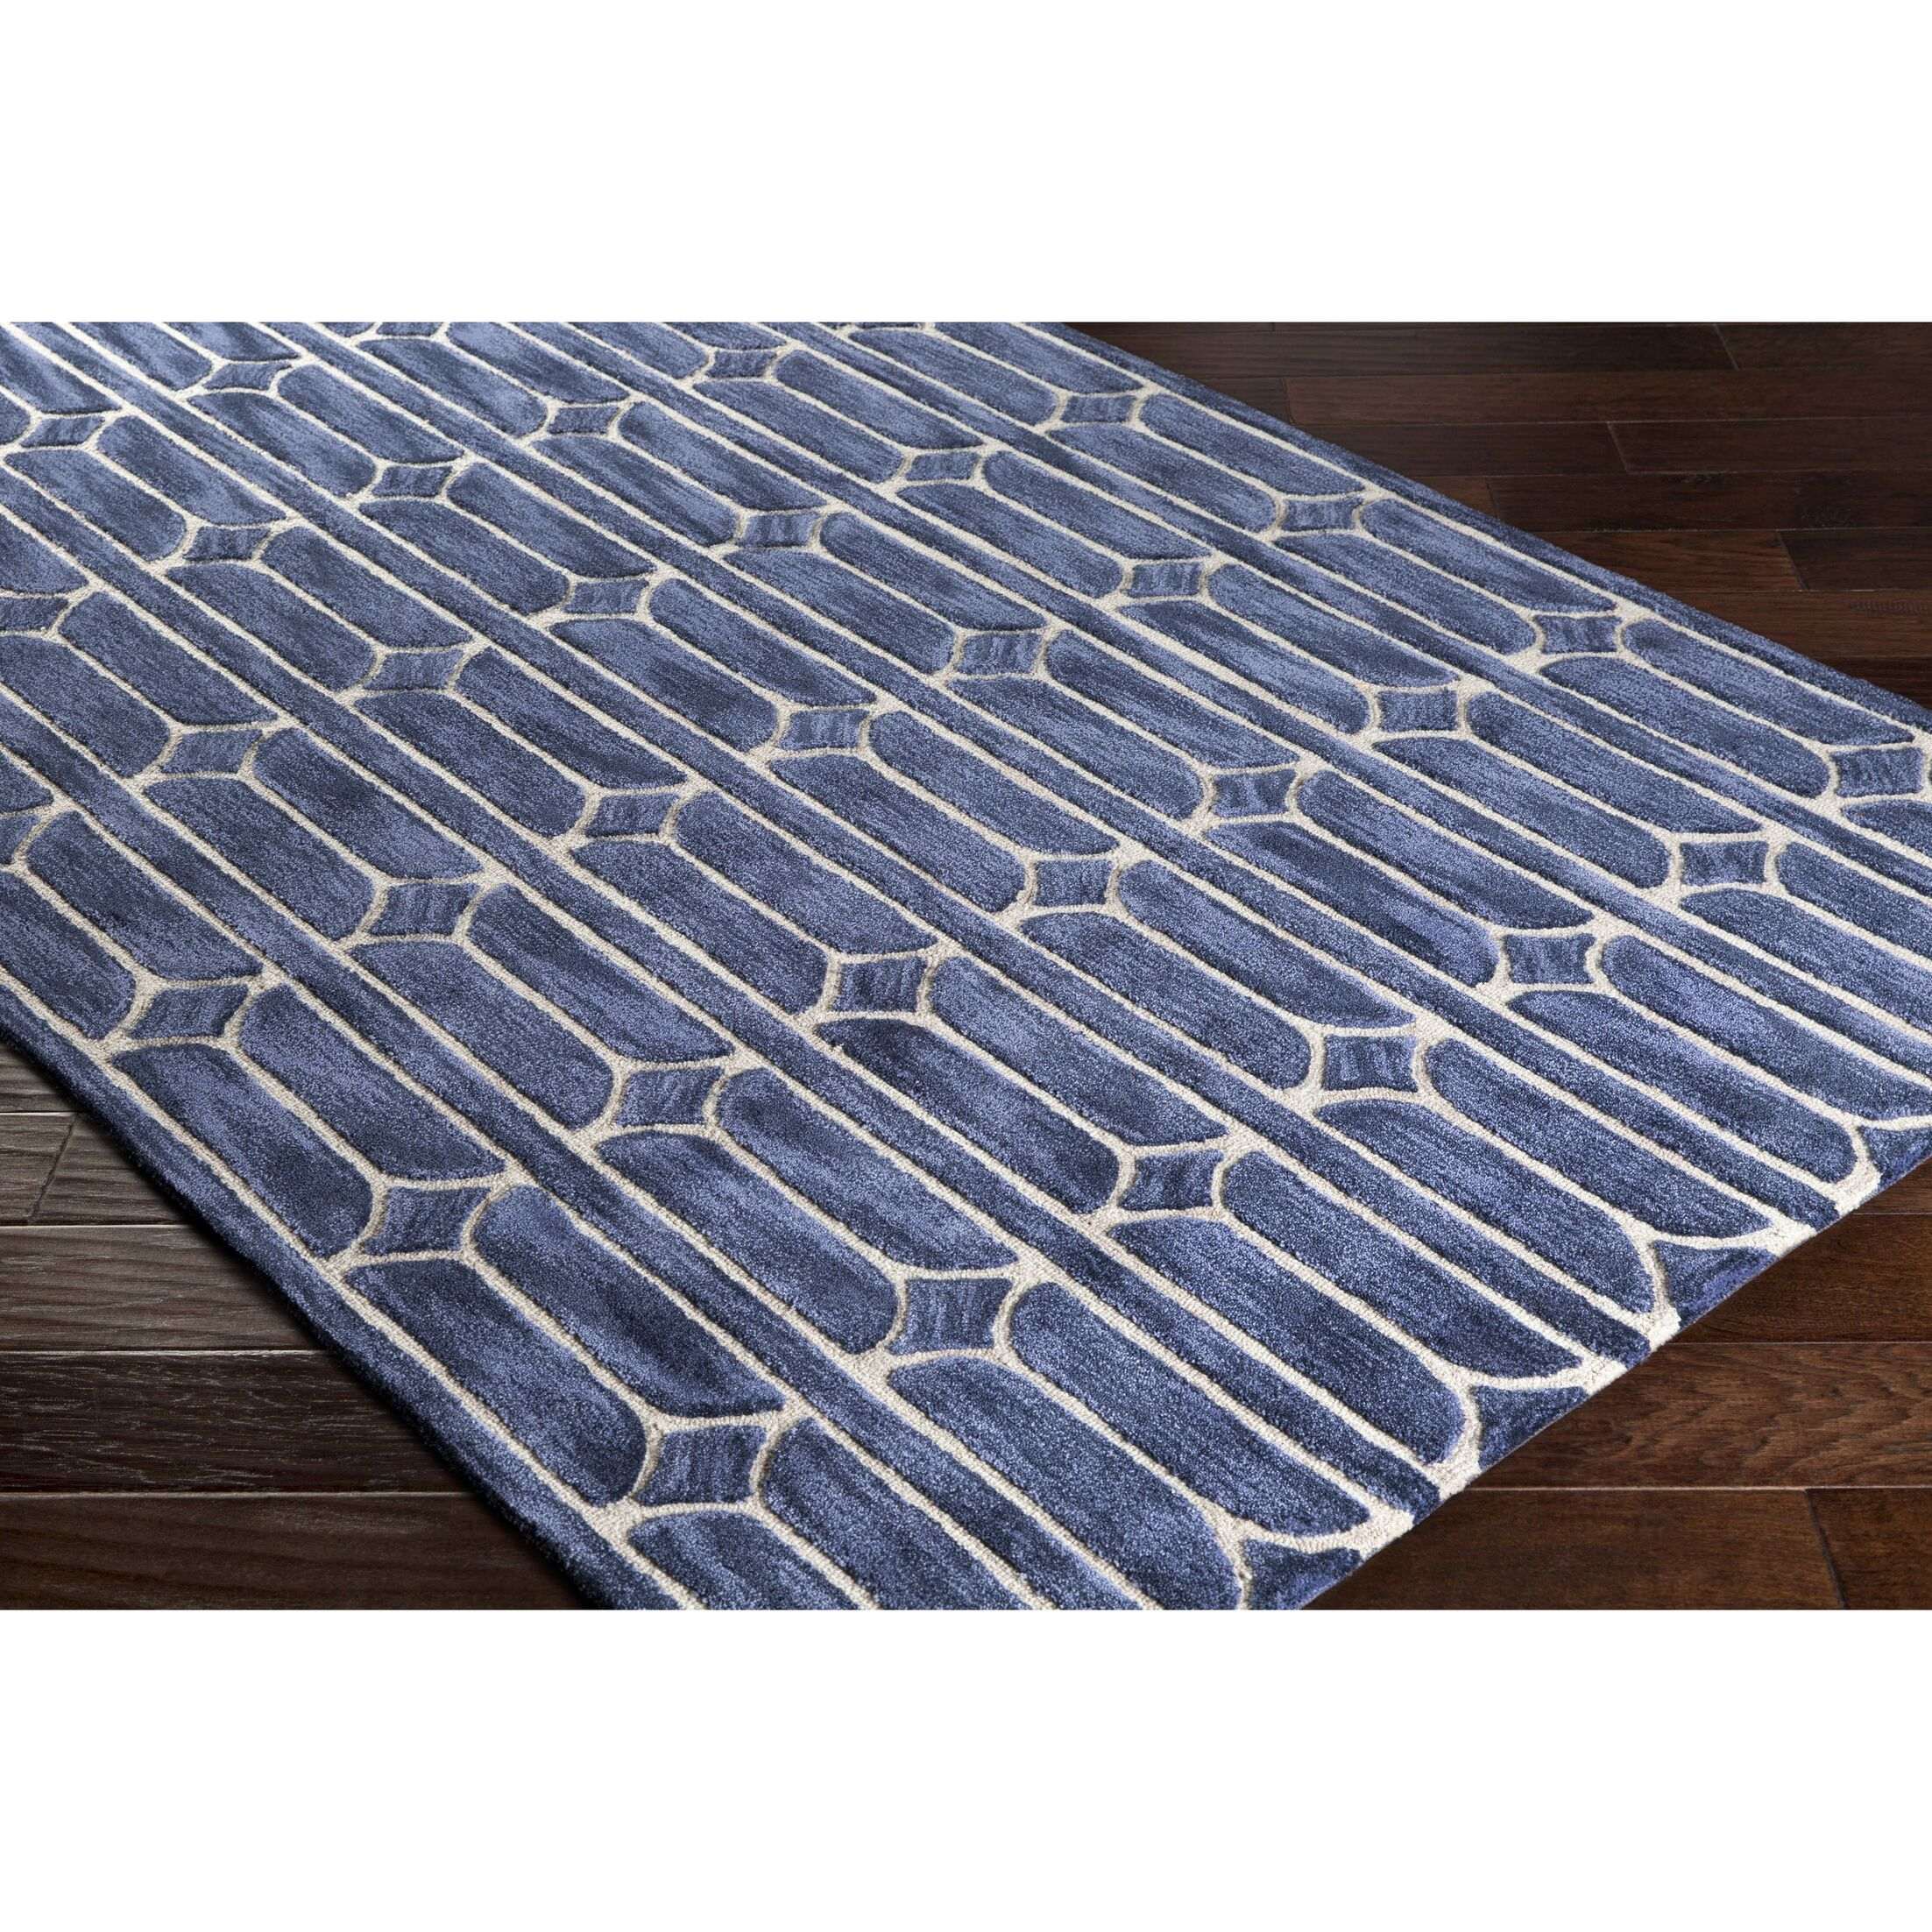 Moultry Hand-Tufted Blue Area Rug Rug Size: Rectangle 8' x 10'